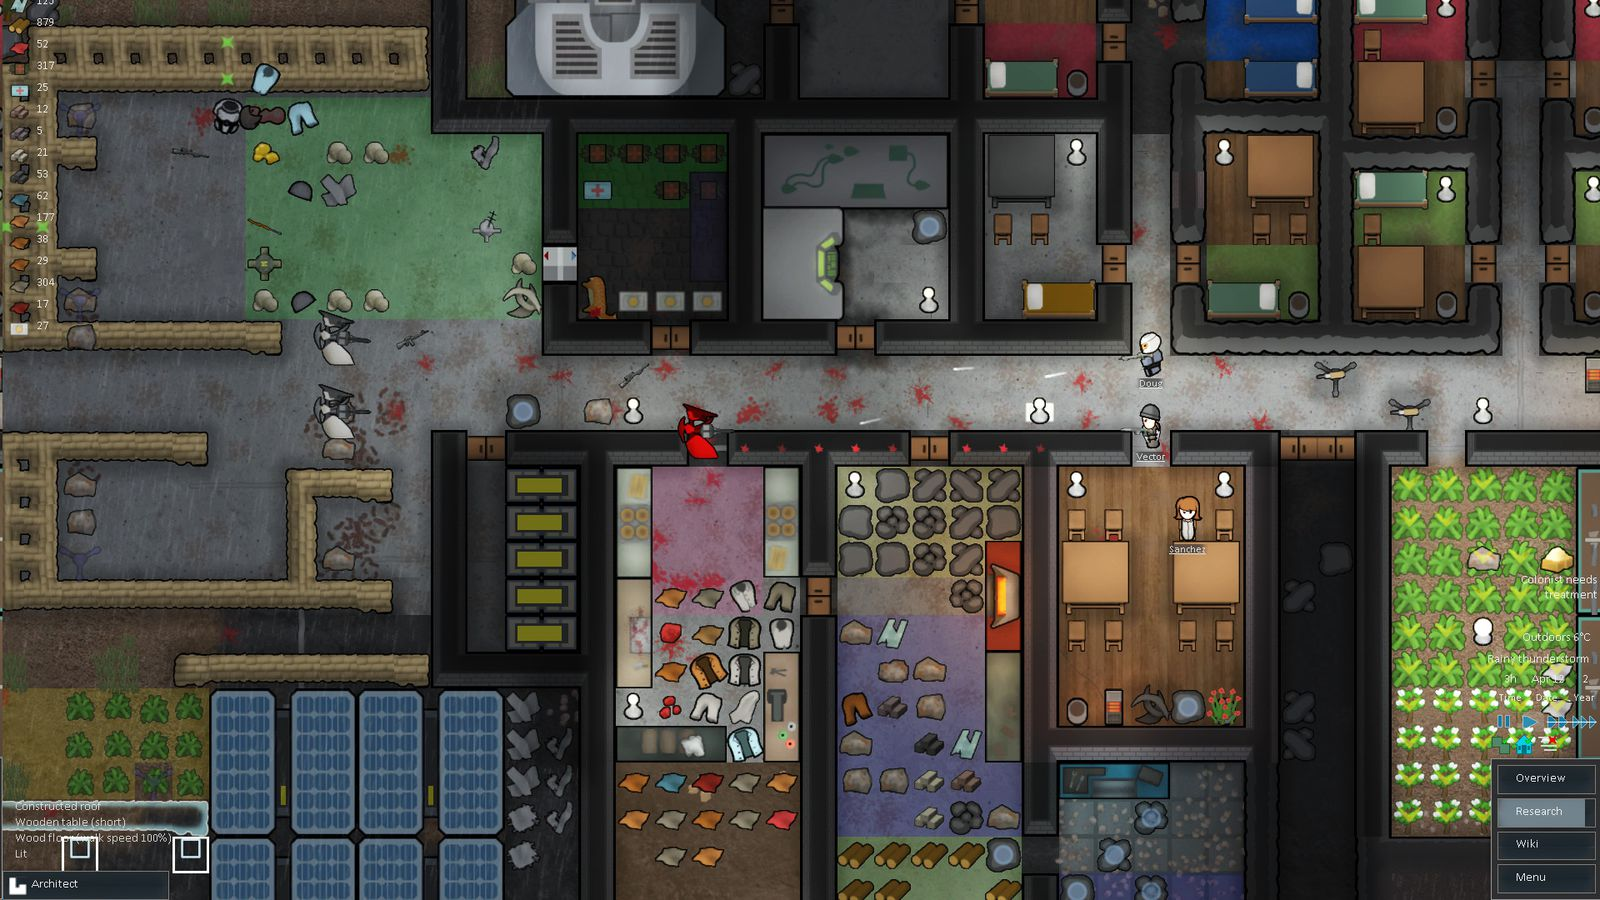 House Design Games Like Sims Rimworld S Sexuality Problem Leads To Witch Hunt Says